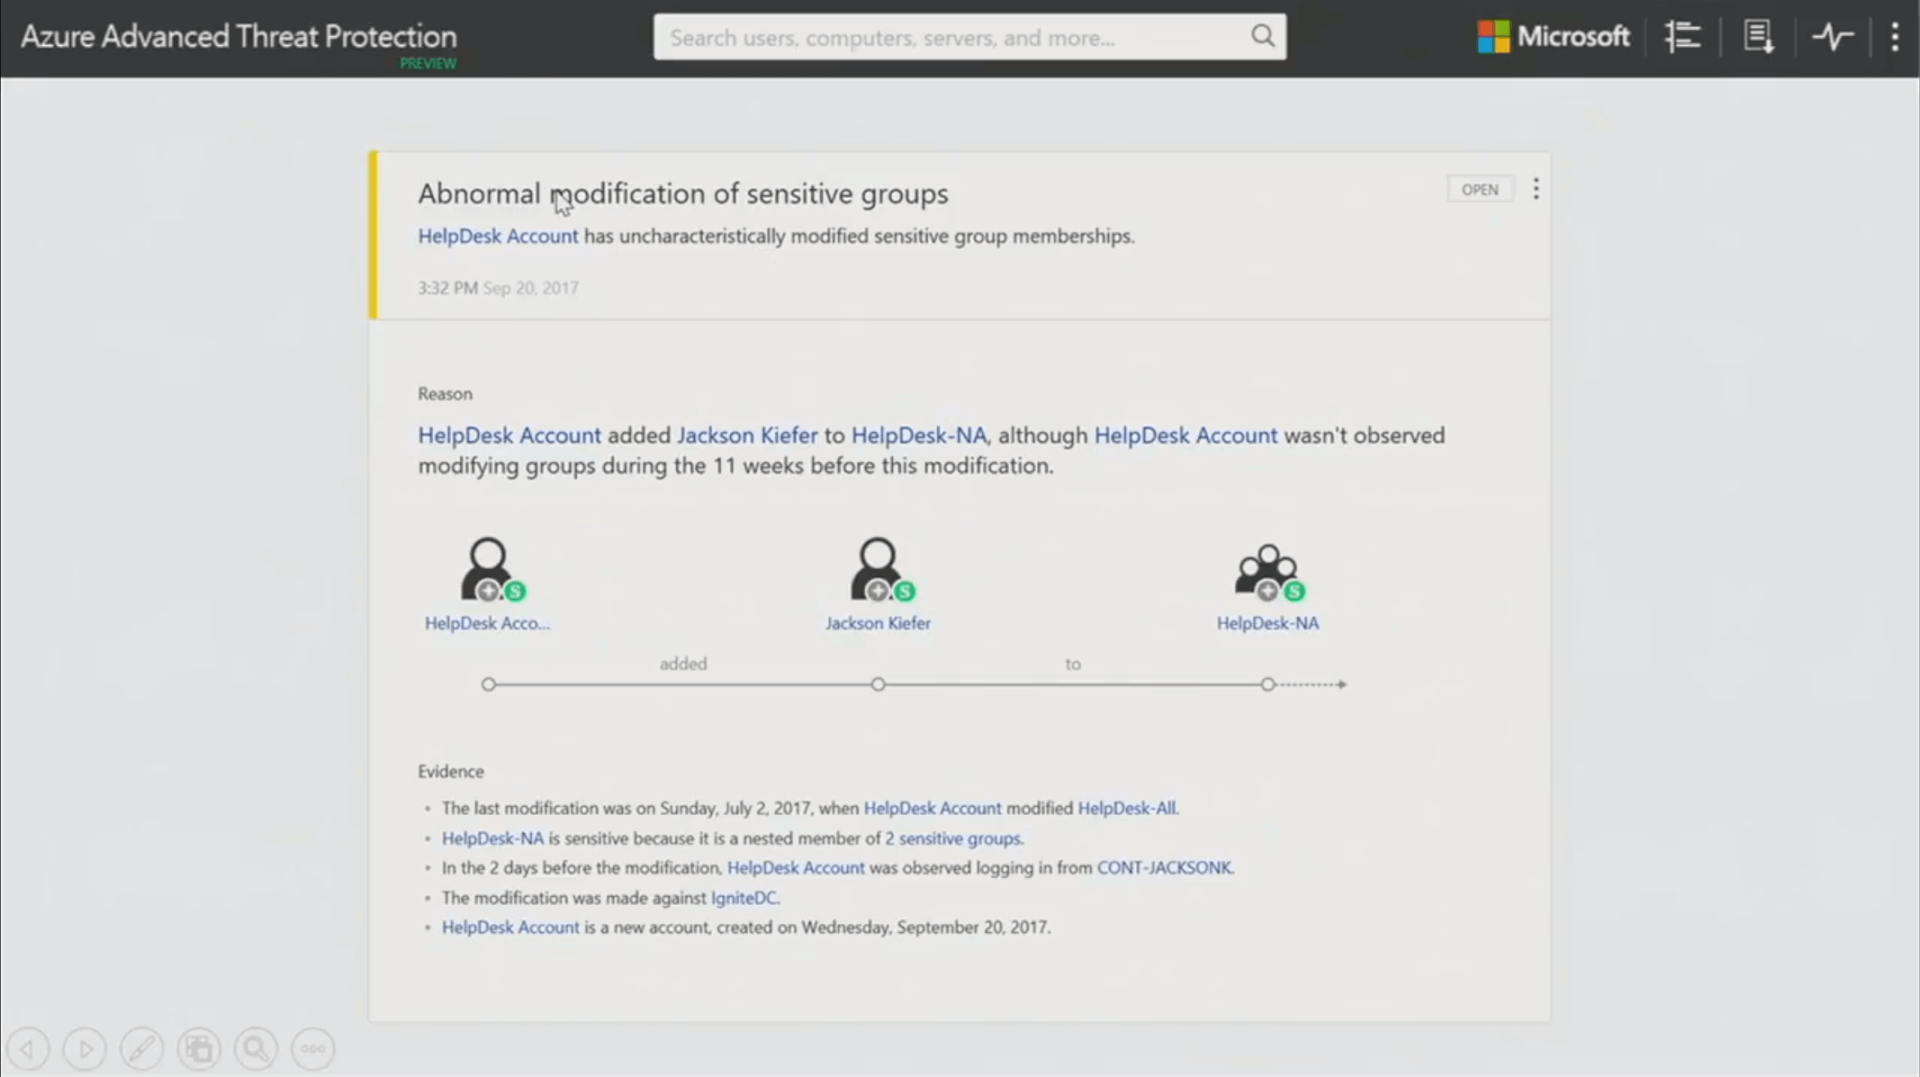 """Texte de remplacement généré par une machine: Azure Advanced Threat Protection Search users. comouters servers. and more.. Microsoft Abnormal tpodification of sensitive groups HelpDesk Account has uncharacteristically modified sensitive group memberships. 3:32 PM sep av HelpDesk Account added Jackson Kiefer to HelpDesk-NA, although HelpDesk Account wasn•t observed modifying groups during the 1 1 weeks before this modification. OPEN HelpDesk Acco"""". added Jackson Kiefer HelpDesk-NA to The last modification was on Sunday. July 2.2017. when HelpDesk Account modified HelpDesk•All. HelpDesk-NA is sensitive because it is a nested member of 2 sensitive groups. • ln the 2 days before the modification. HelpDesk Account was observed logging in from CONT•JACKSONK The modification was made against IgniteDC. HelpDesk Account is a new account created on Wednesday. September 20.2017."""